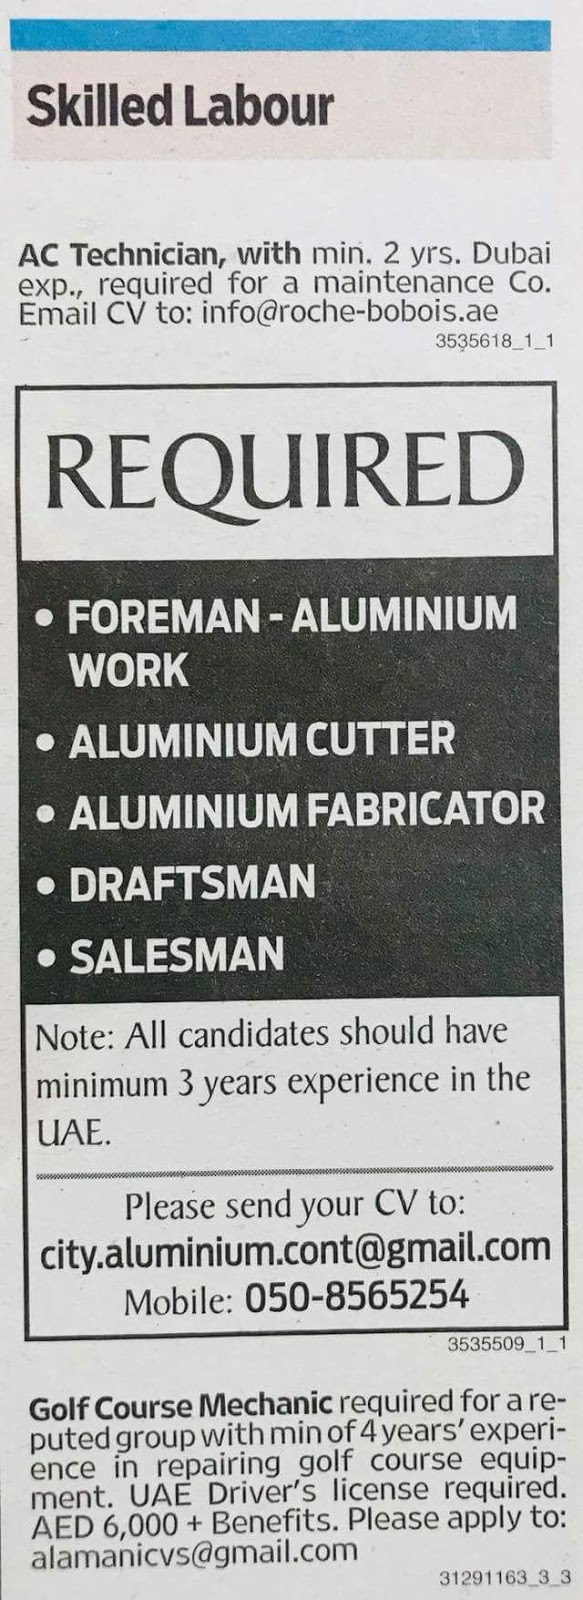 Required Forman, AUTO CAD operator,Fabricator,Cutter